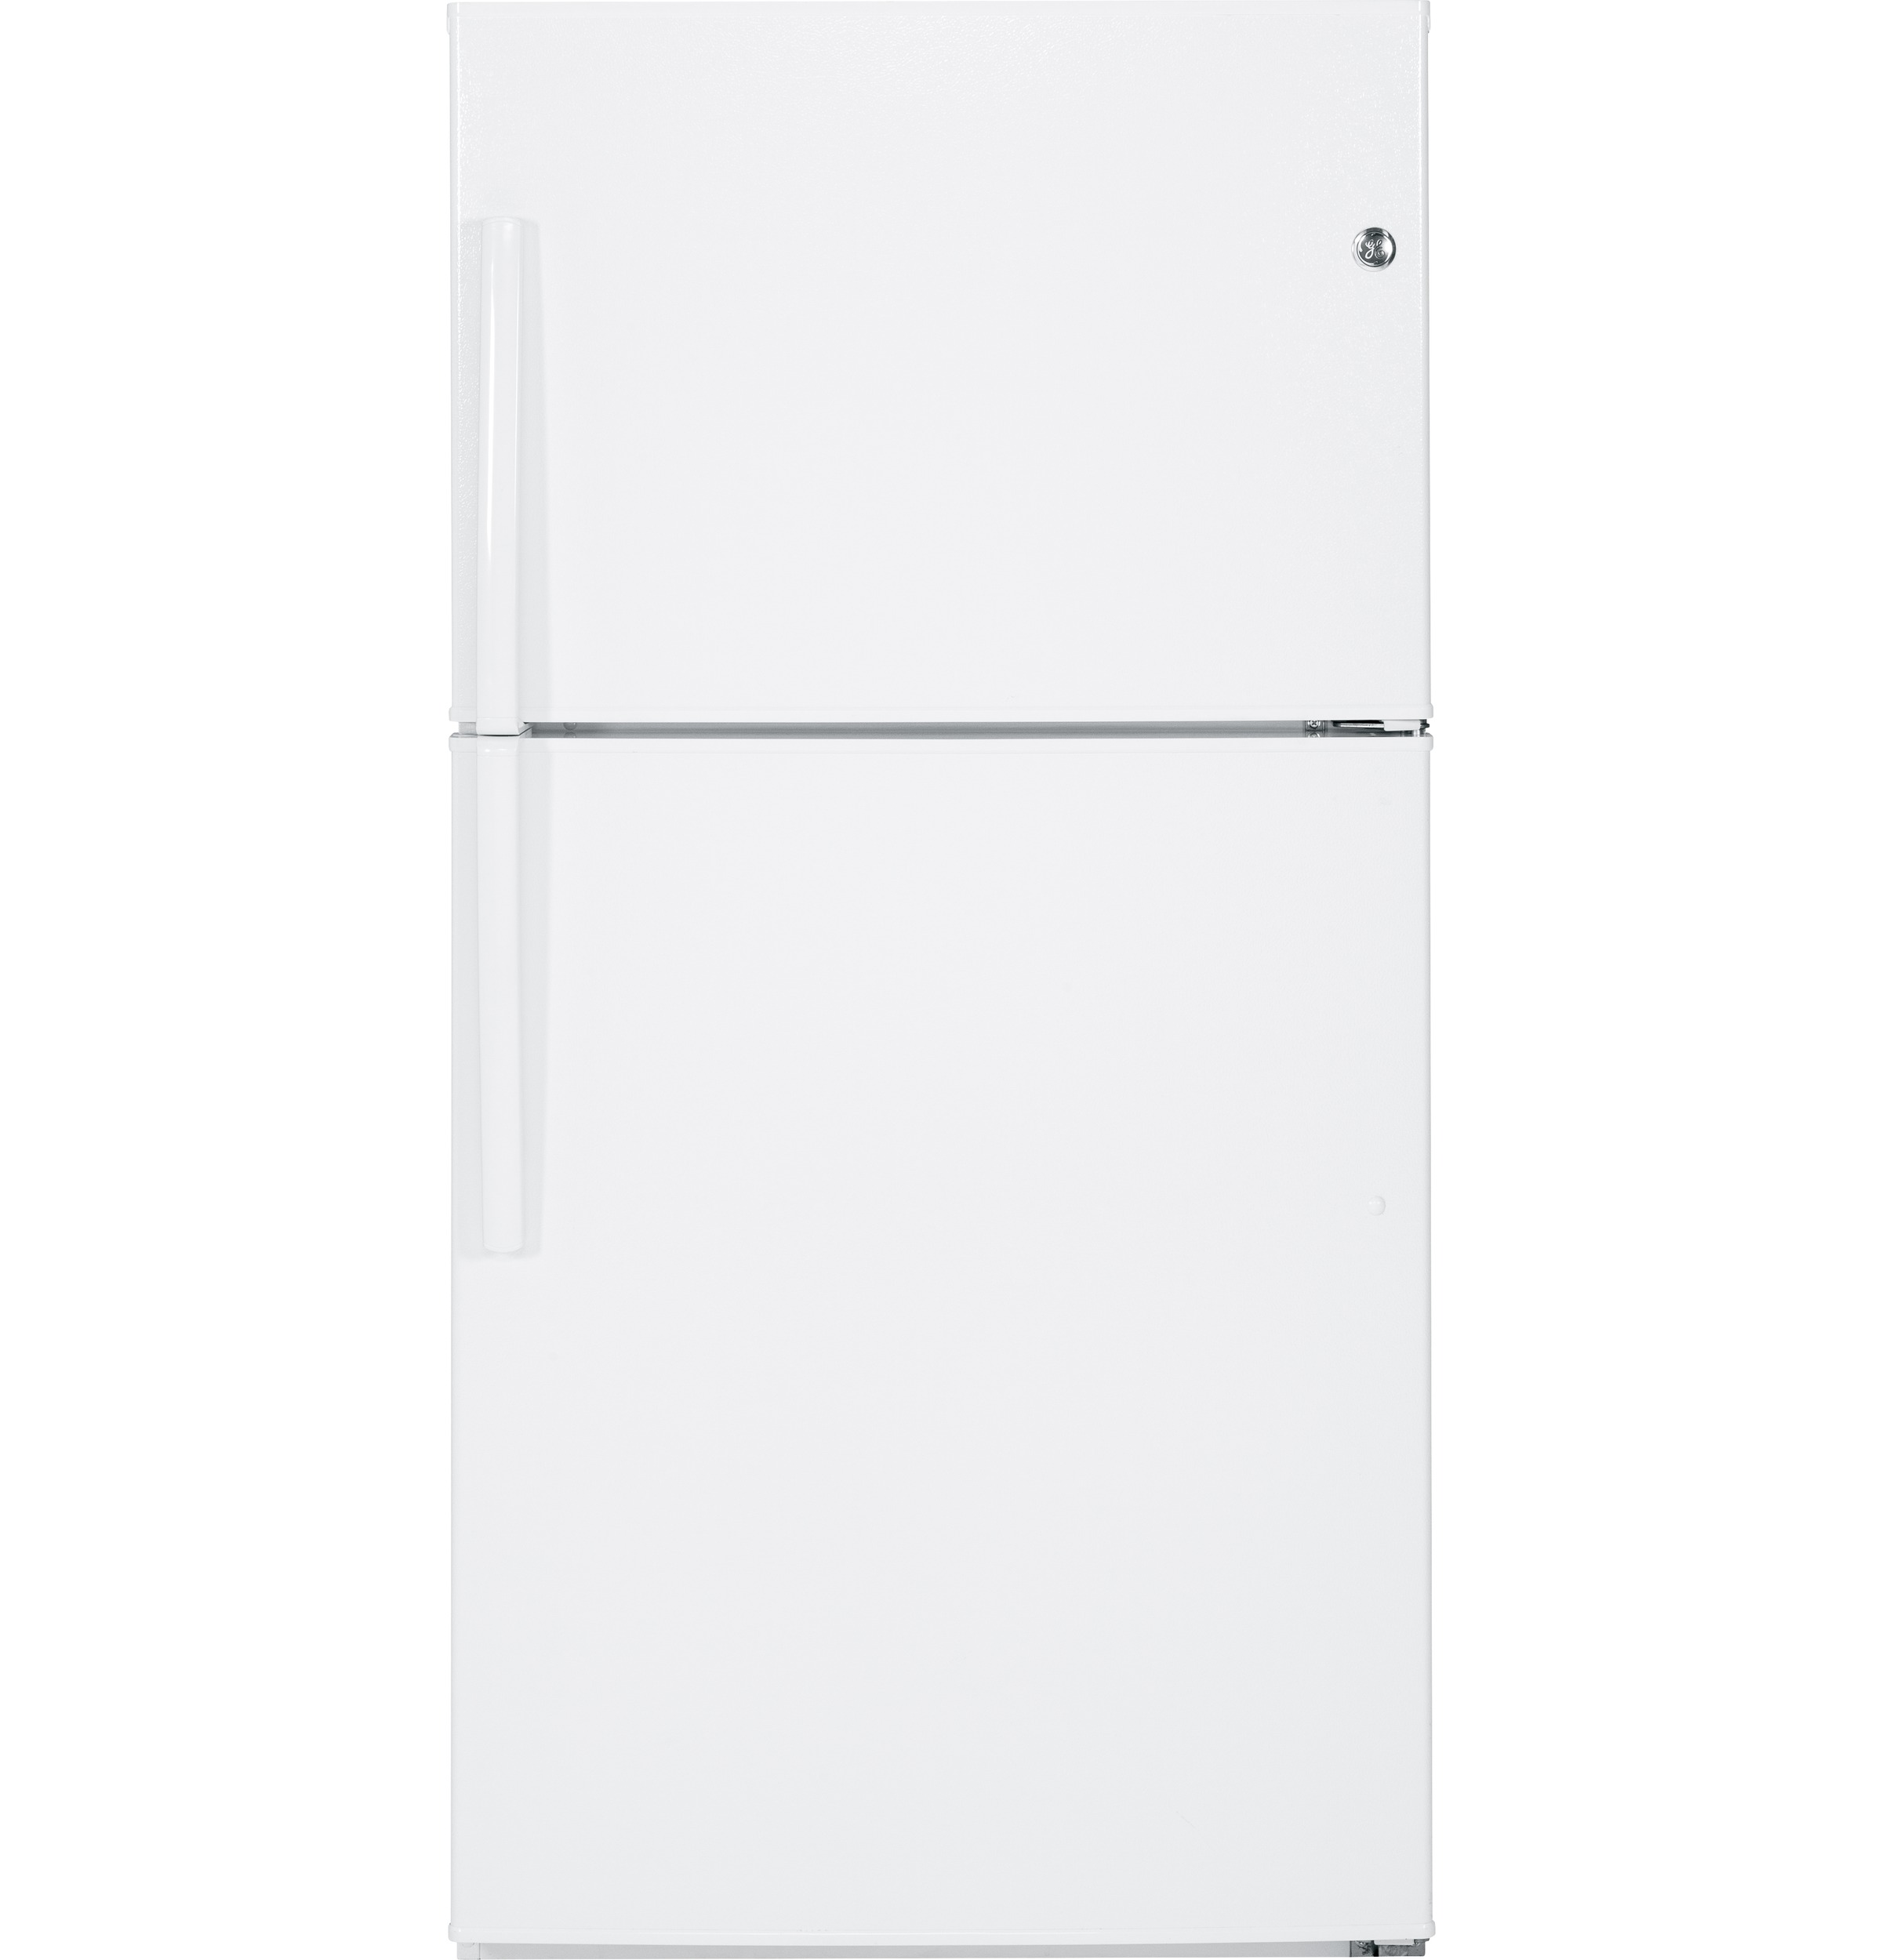 GE GE® ENERGY STAR® 21.1 Cu. Ft. Top-Freezer Refrigerator